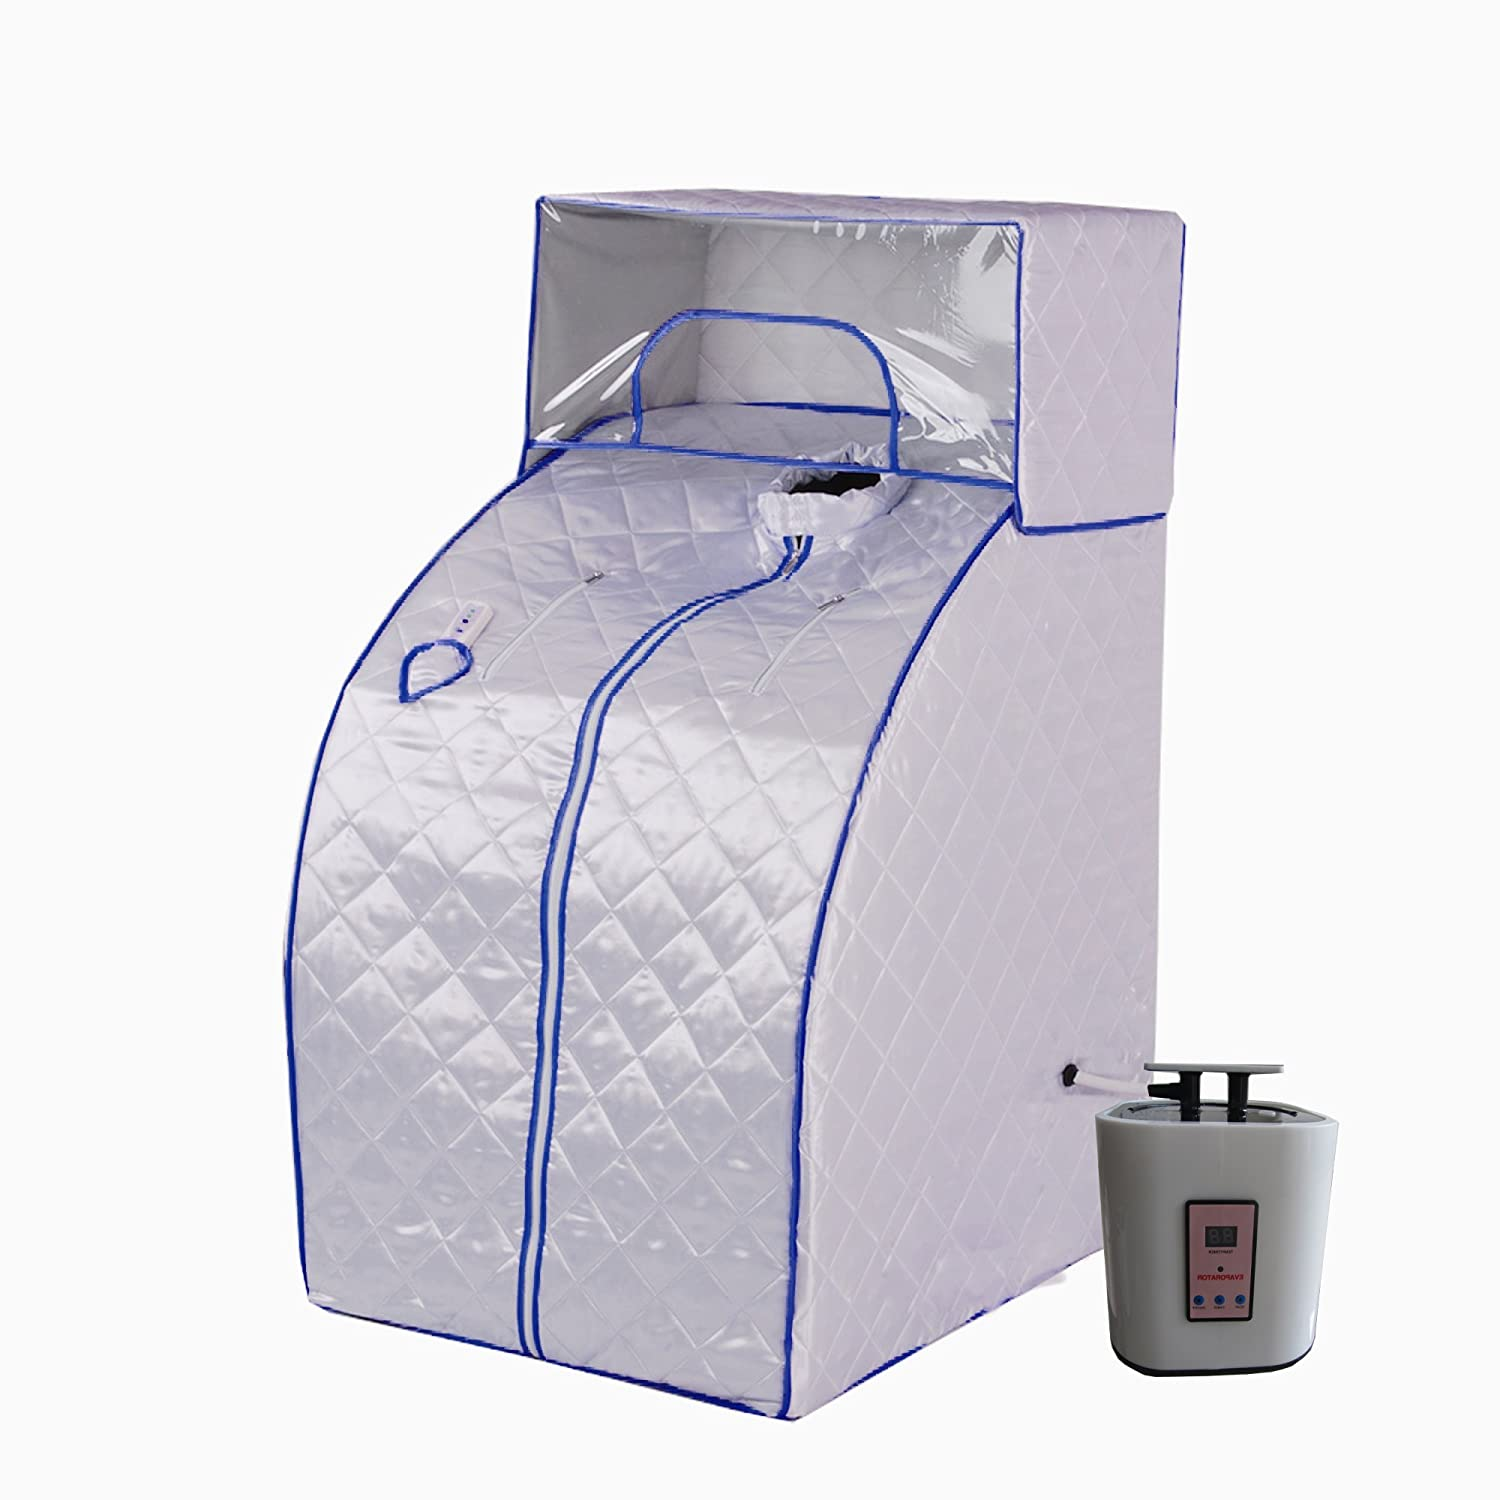 Portable Therapeutic Steam Sauna Spa Detox-Weight Loss with head cover, SS04 fit for good